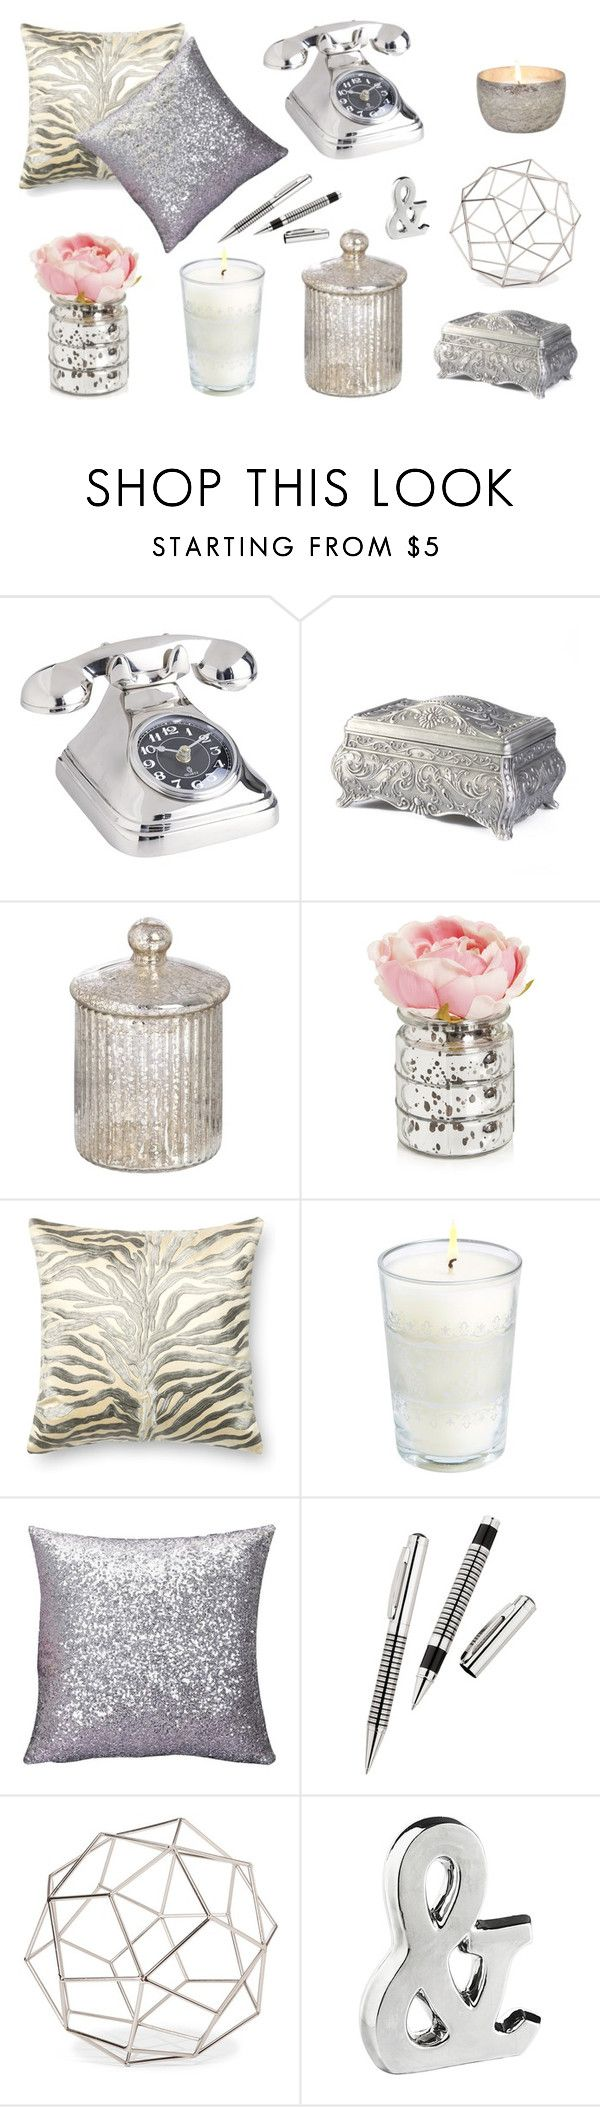 """""""Silver Dekor"""" by annabell-127 ❤ liked on Polyvore featuring interior, interiors, interior design, home, home decor, interior decorating, Pier 1 Imports, Loloi Rugs, Market Street Candles and Threshold"""